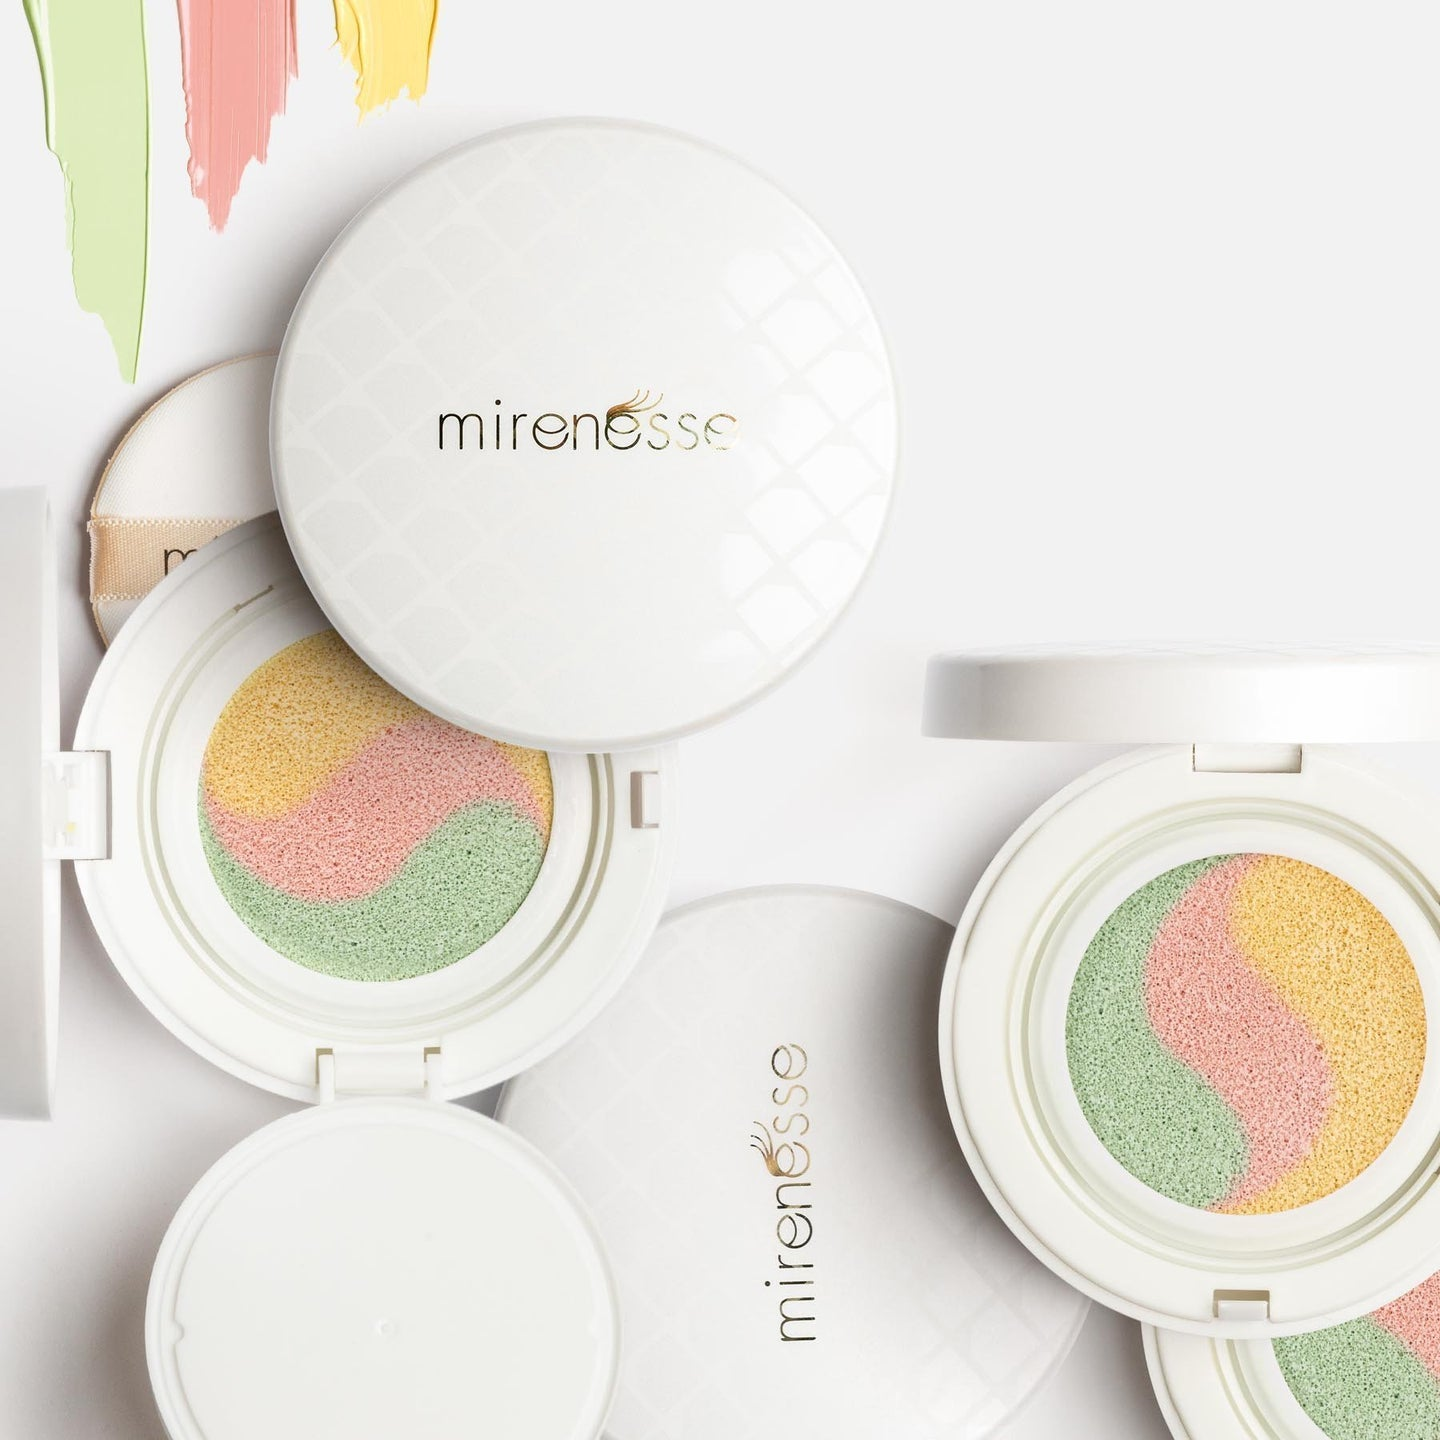 Shop Tone Correcting Makeup Primer by Mirenesse - Let's make it a trend #explorebeautiful face primers and color correctors